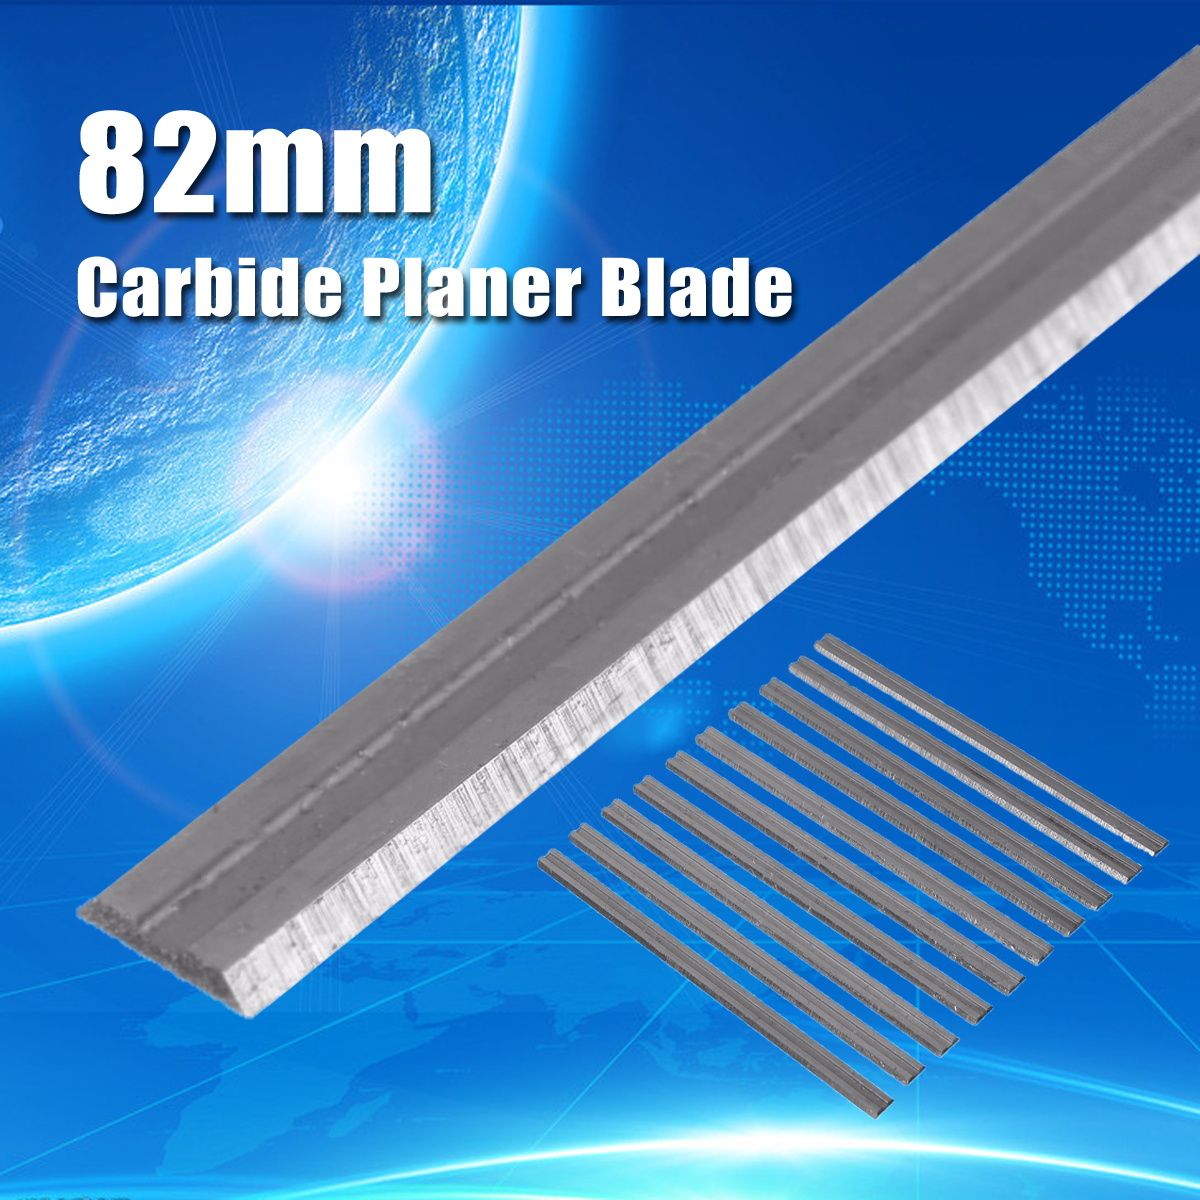 10Pcs/set 82mm X 5.5mm Reversible Carbide Planer Blades For Cutting Soft Hard Woods Ply-wood Board Woodworking Power Tool